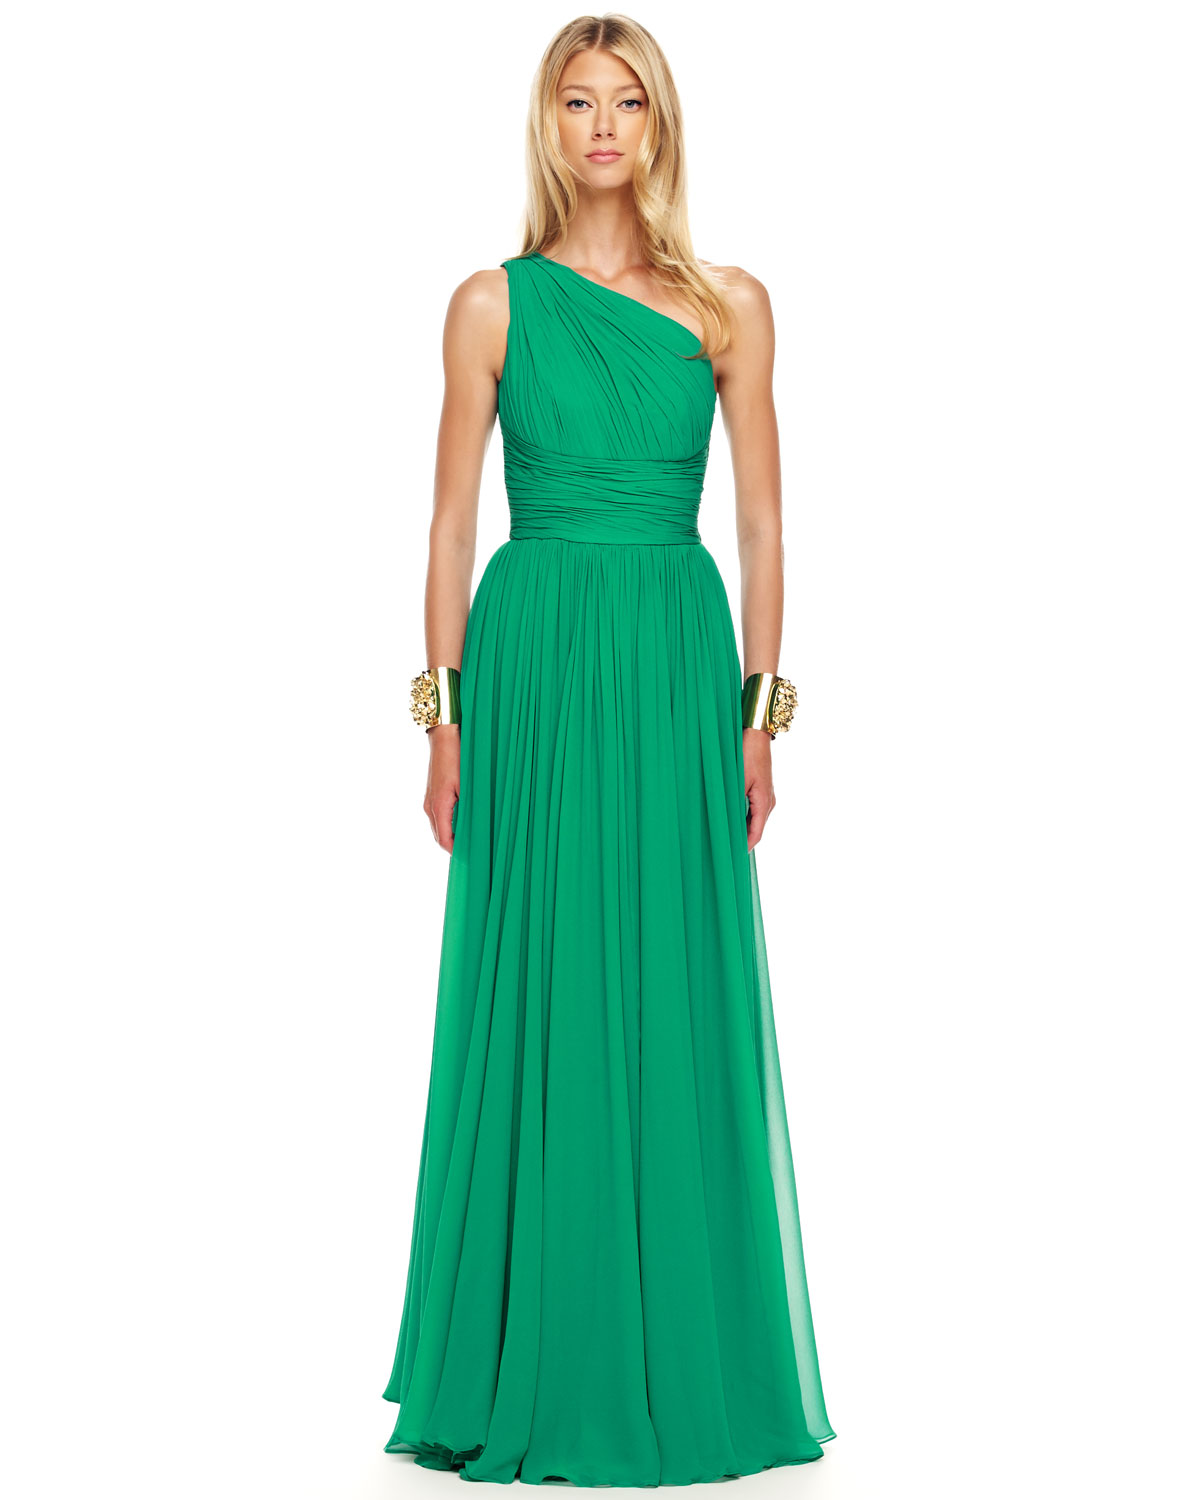 Lyst - Michael Kors Ruched Oneshoulder Gown in Green